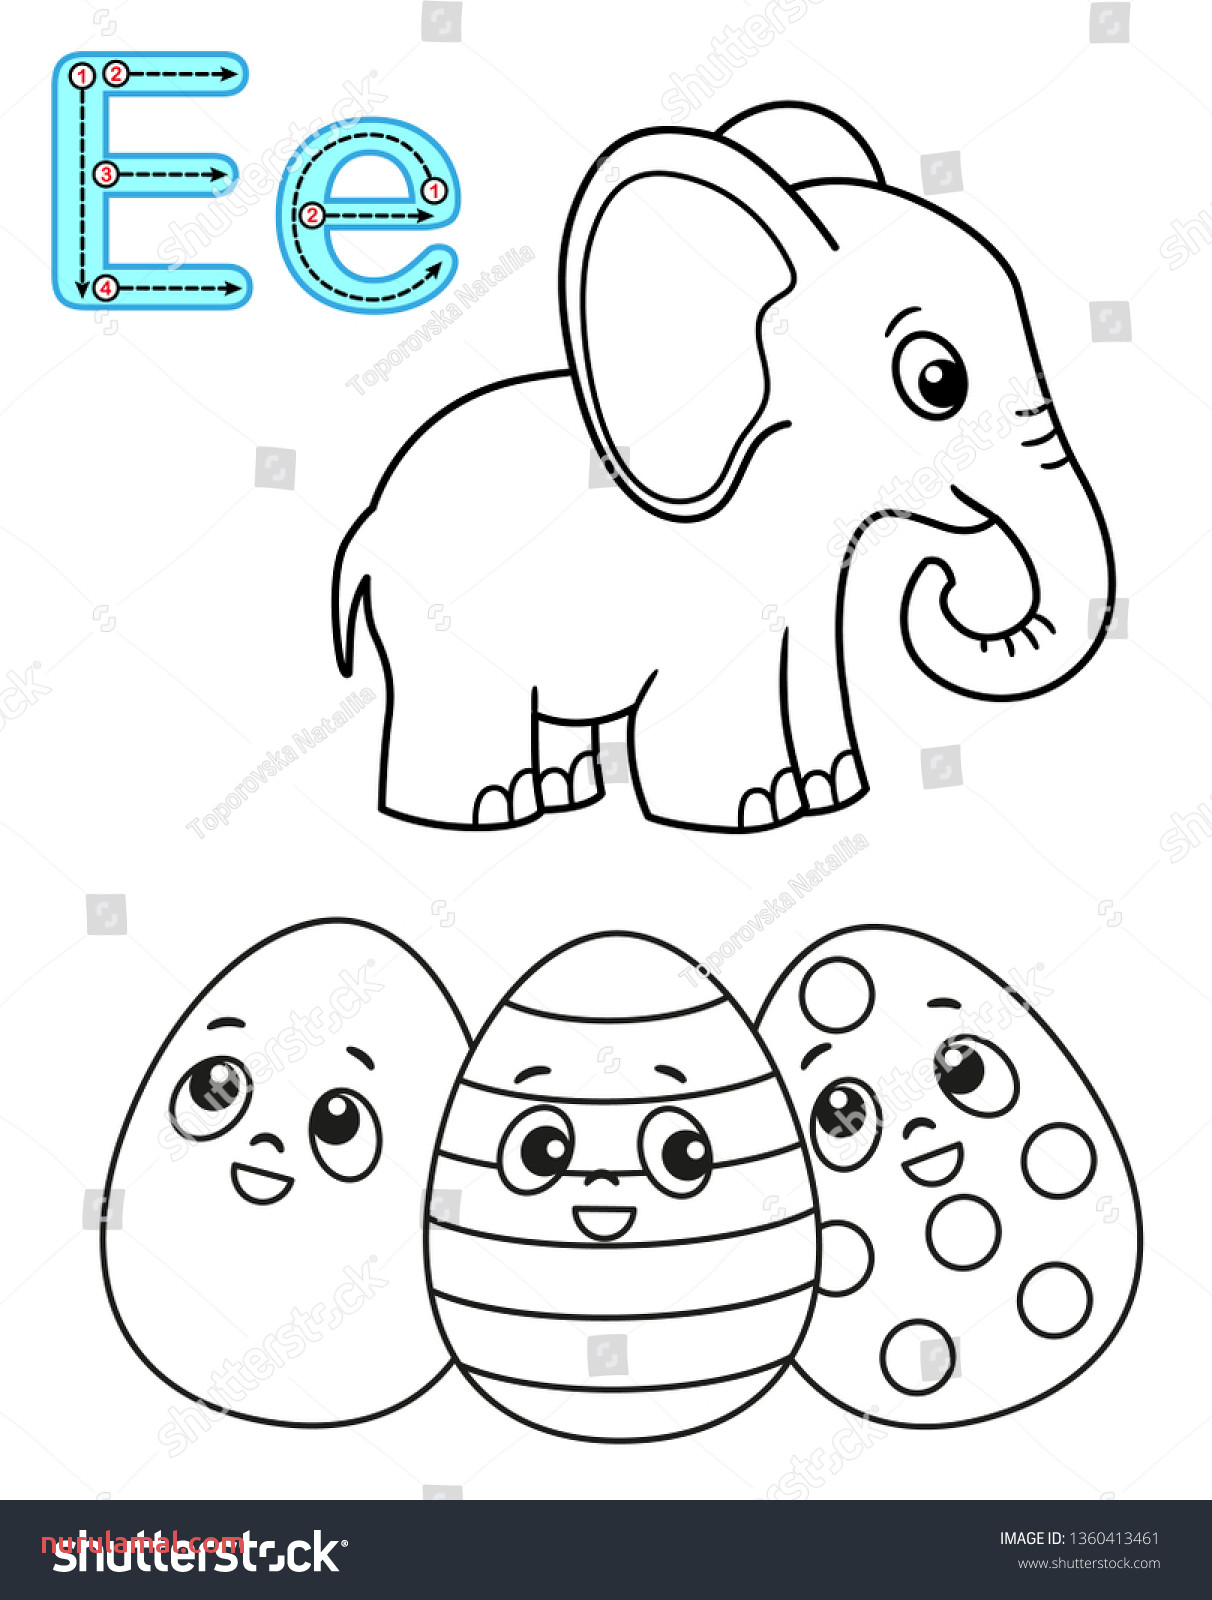 Kindergarten Worksheets Easter Printable for Kindergarten